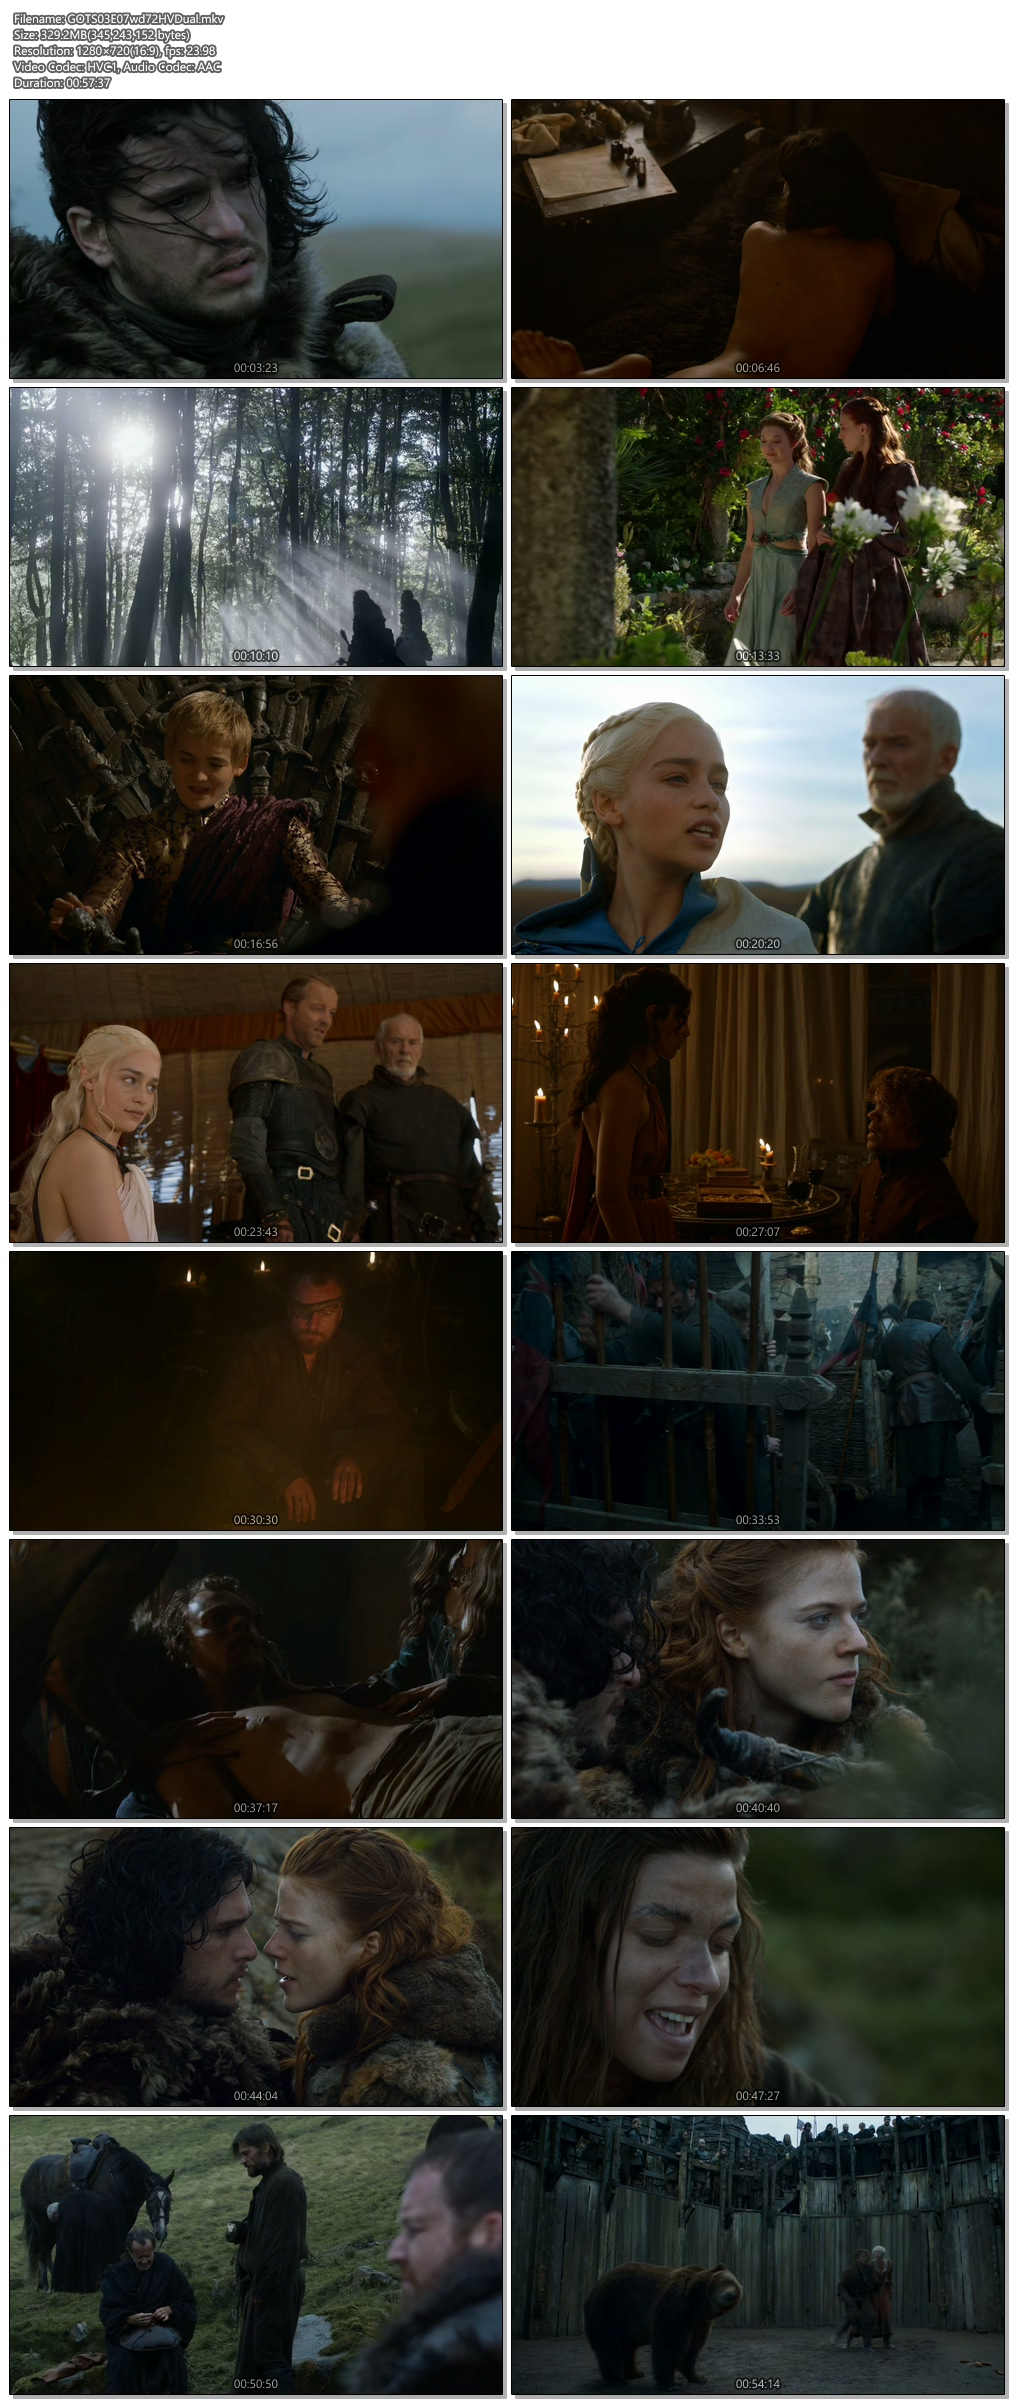 GOTS03E07wd72HVDual.mkv Watch Online Game of Thrones 2013 Full Season 03 Episode 07 in Hindi Download